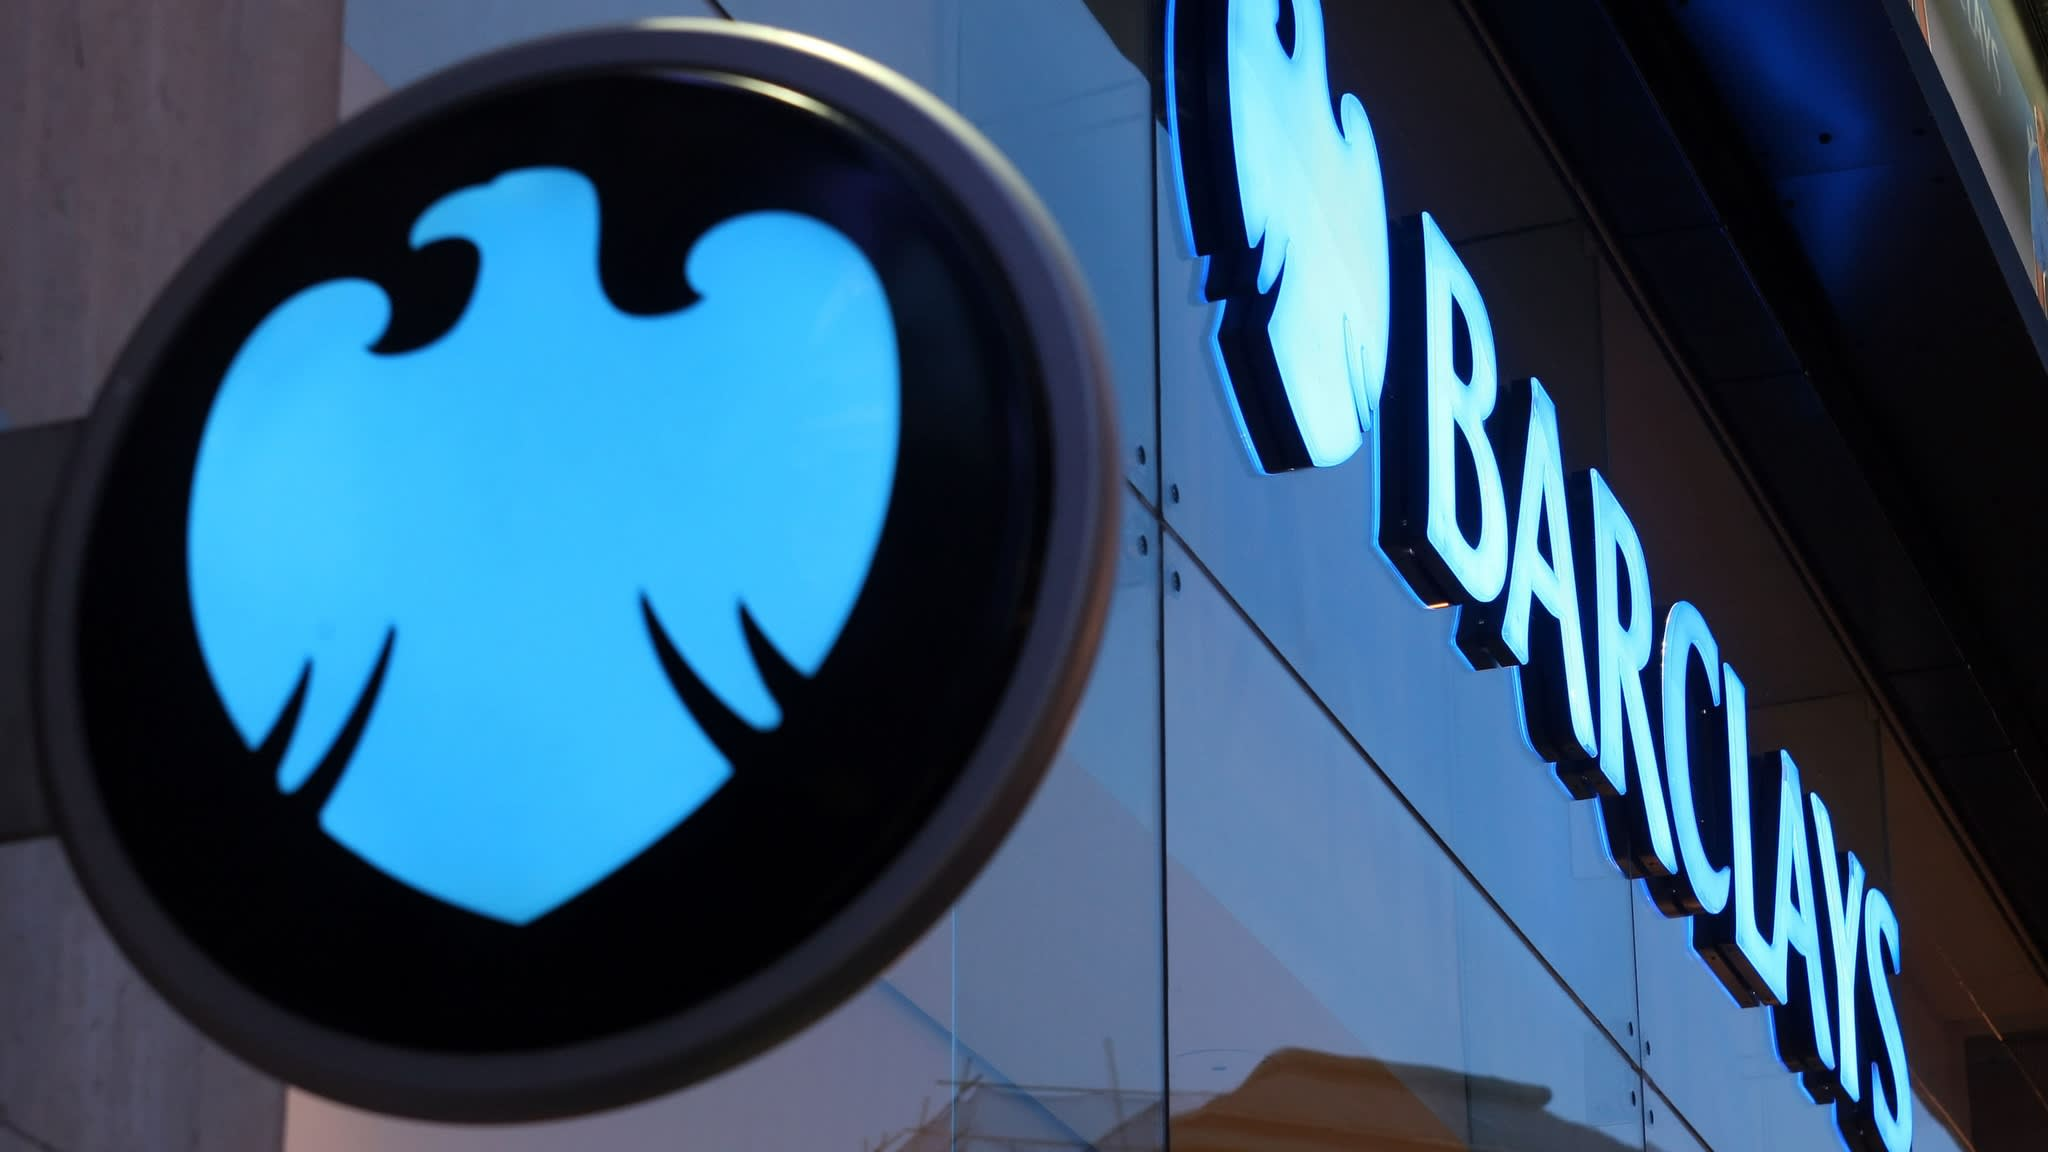 Edward Bramson's activist fund takes 5% stake in Barclays